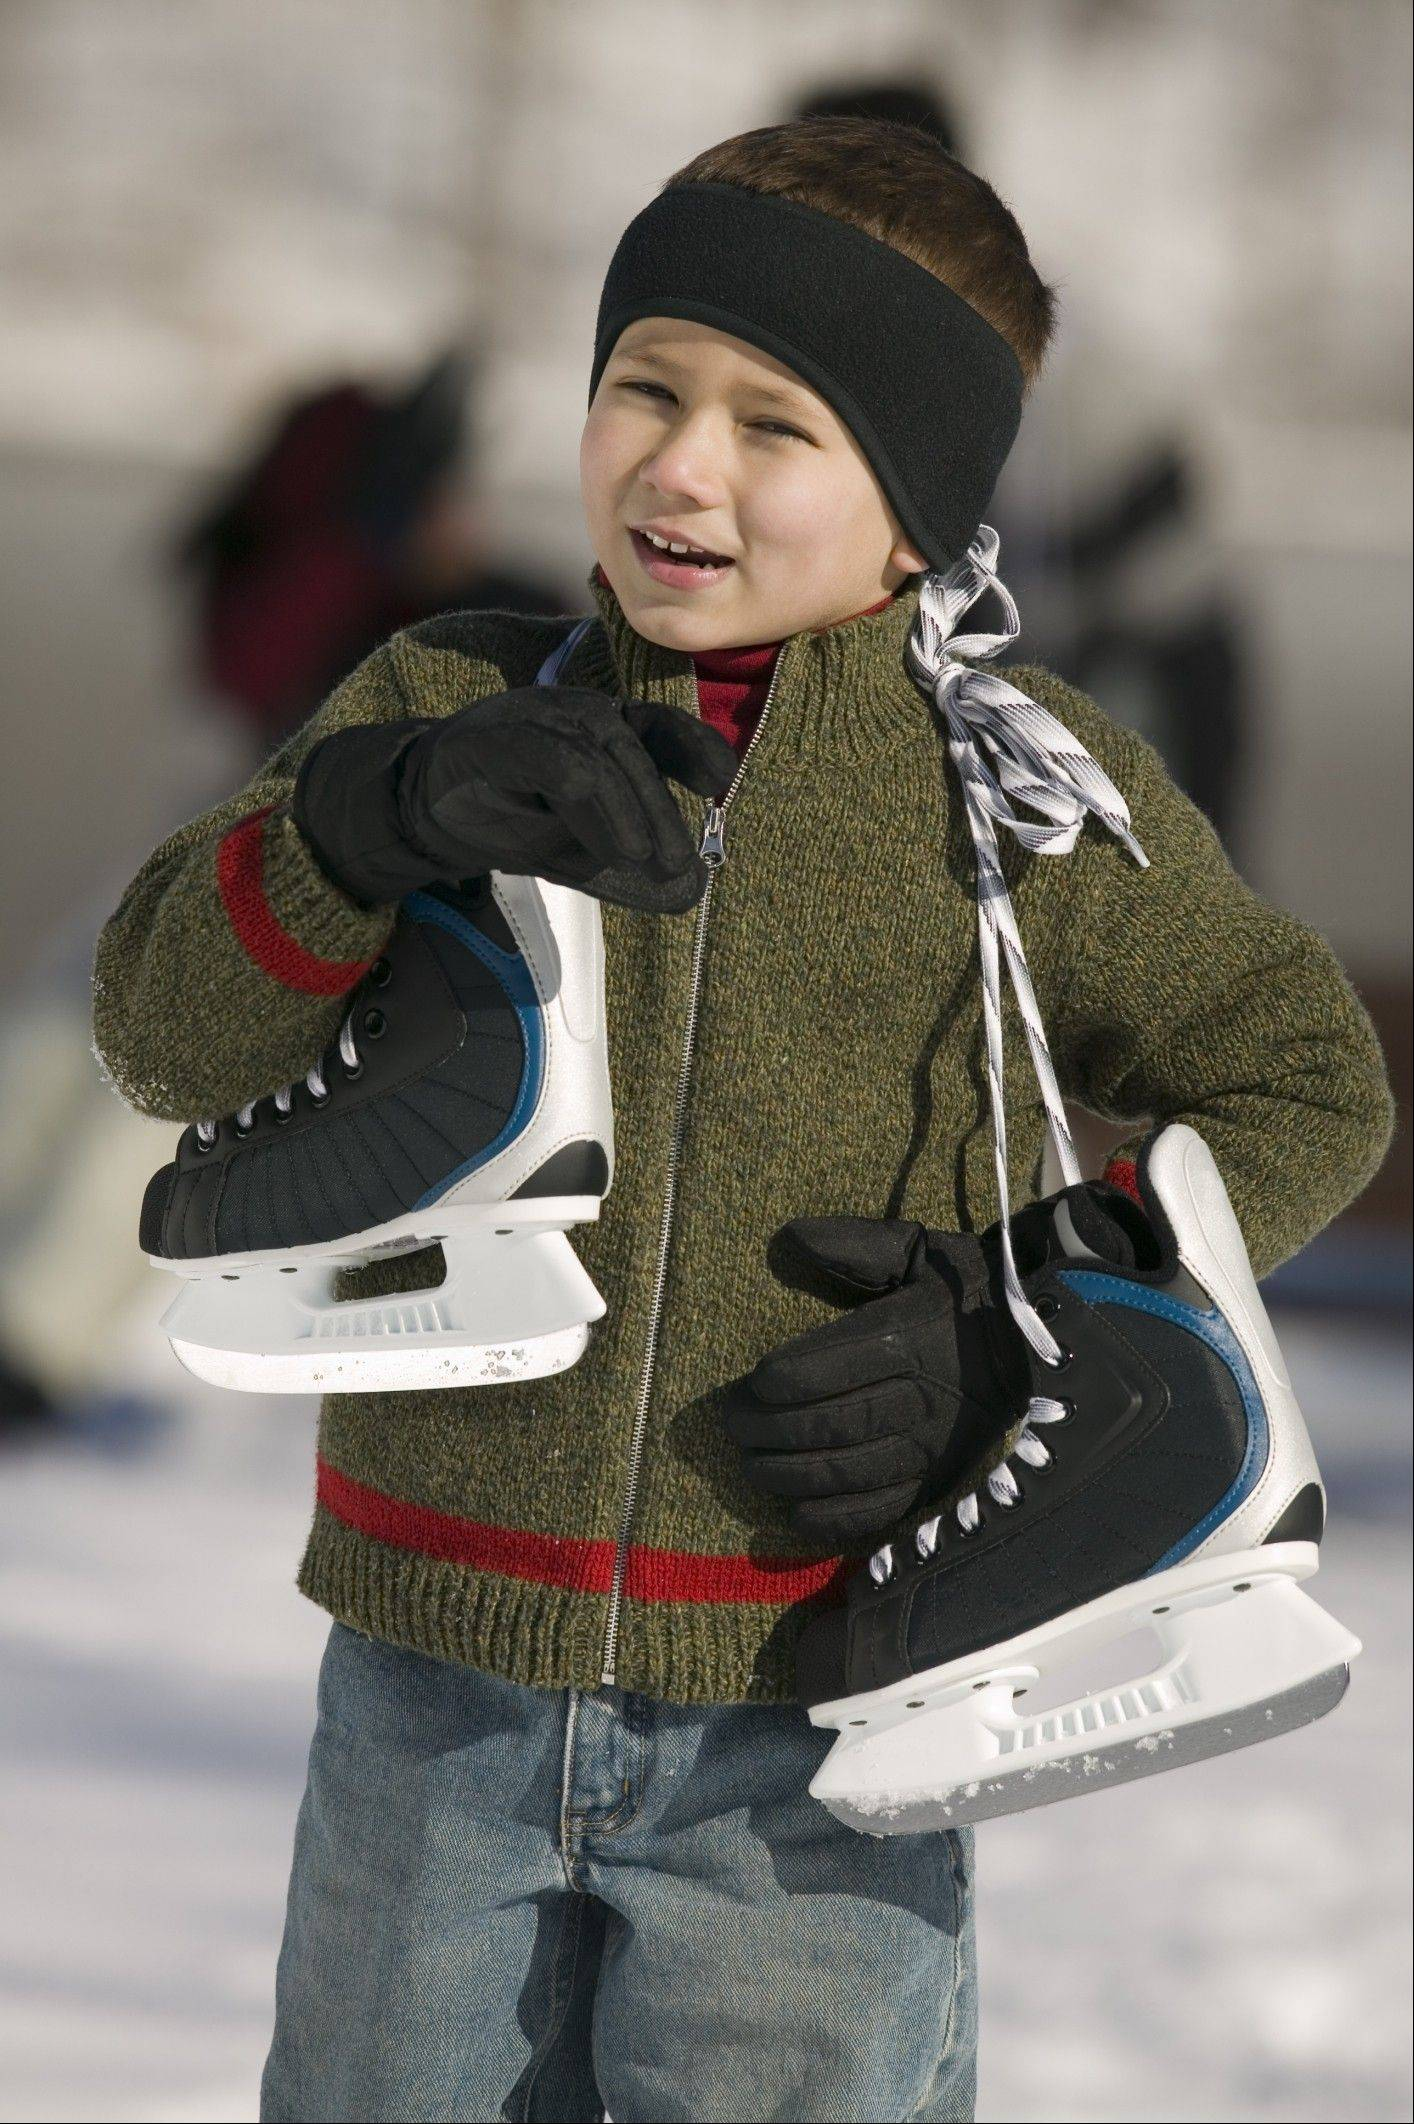 Chillier weather beckons skaters to grab their skates and head for local outdoor ice skating rinks.